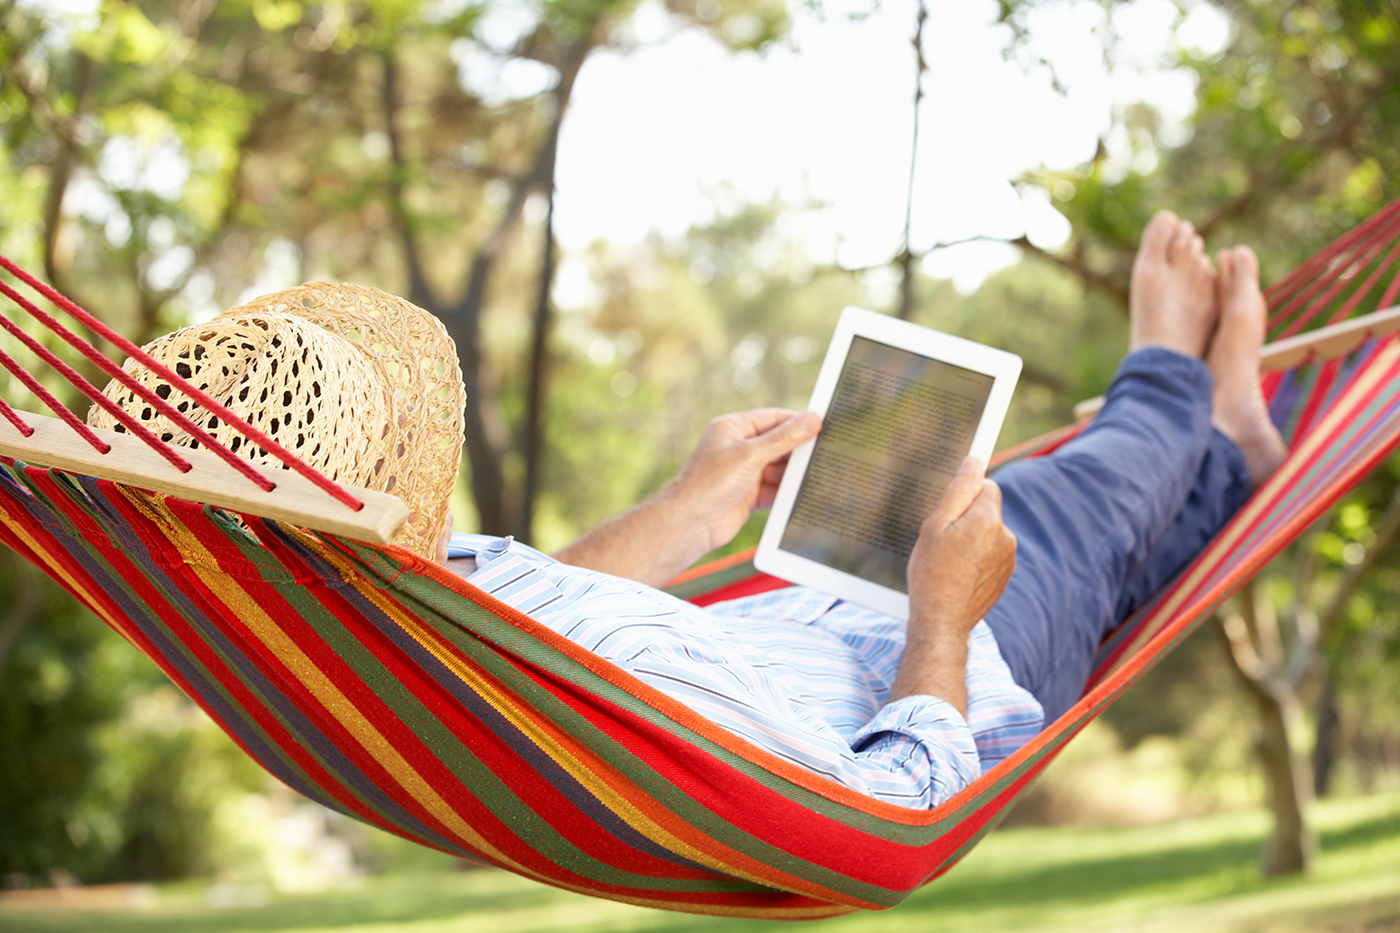 Man wearing hat relaxing in hammock with e-book